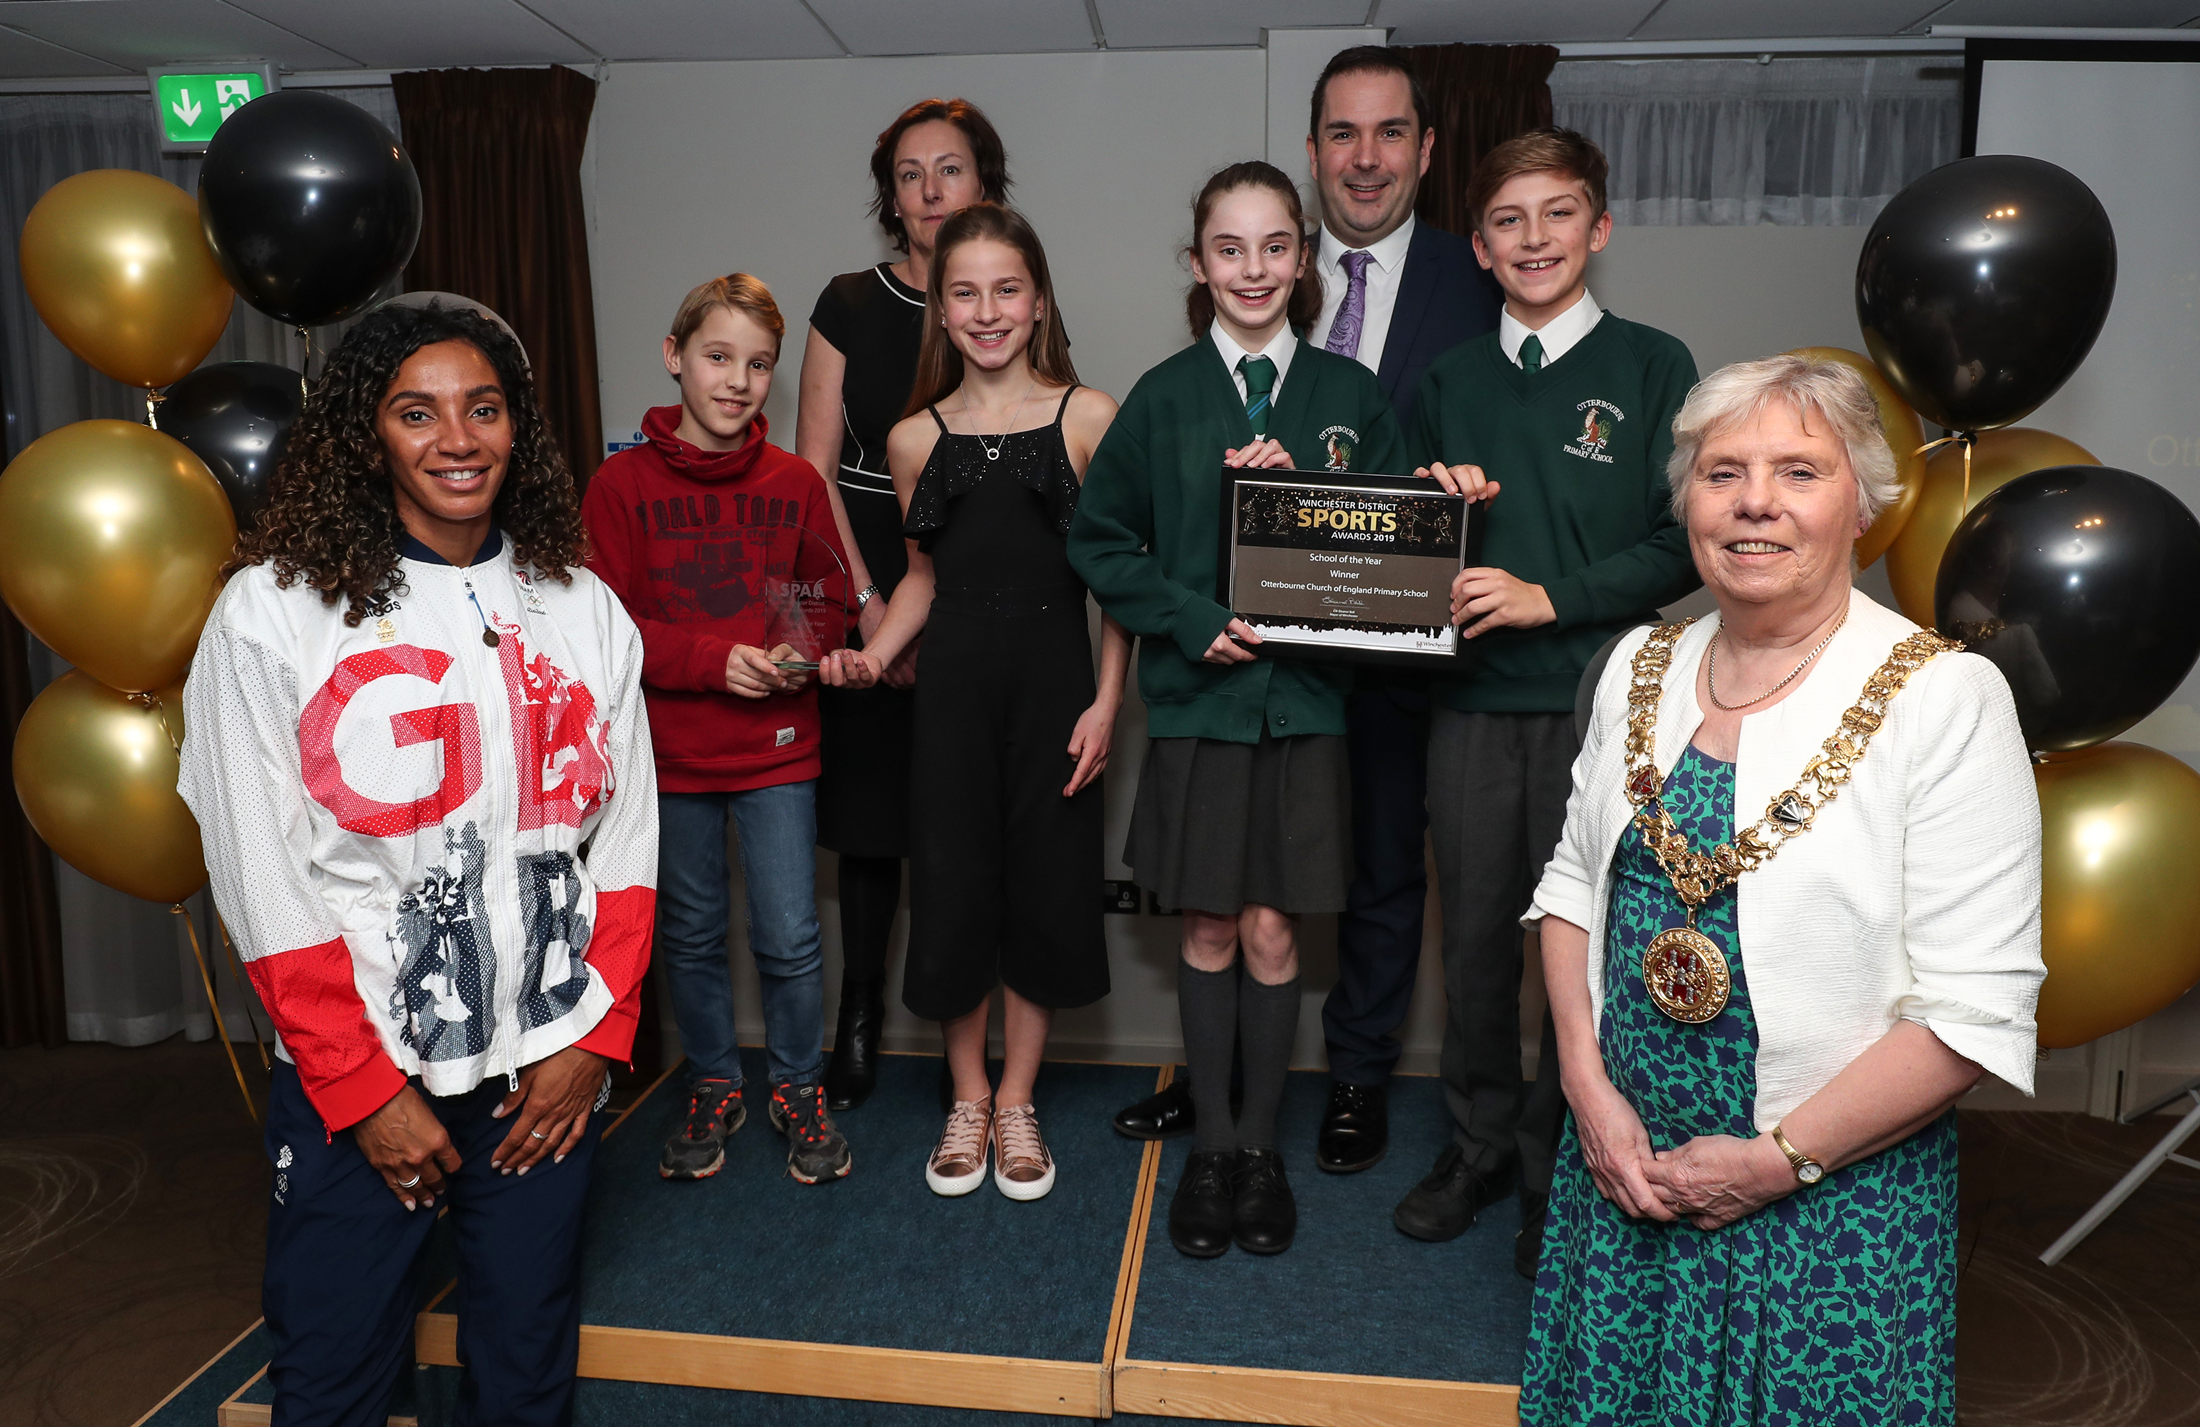 School of the Year - Otterbourne C of E Primary School